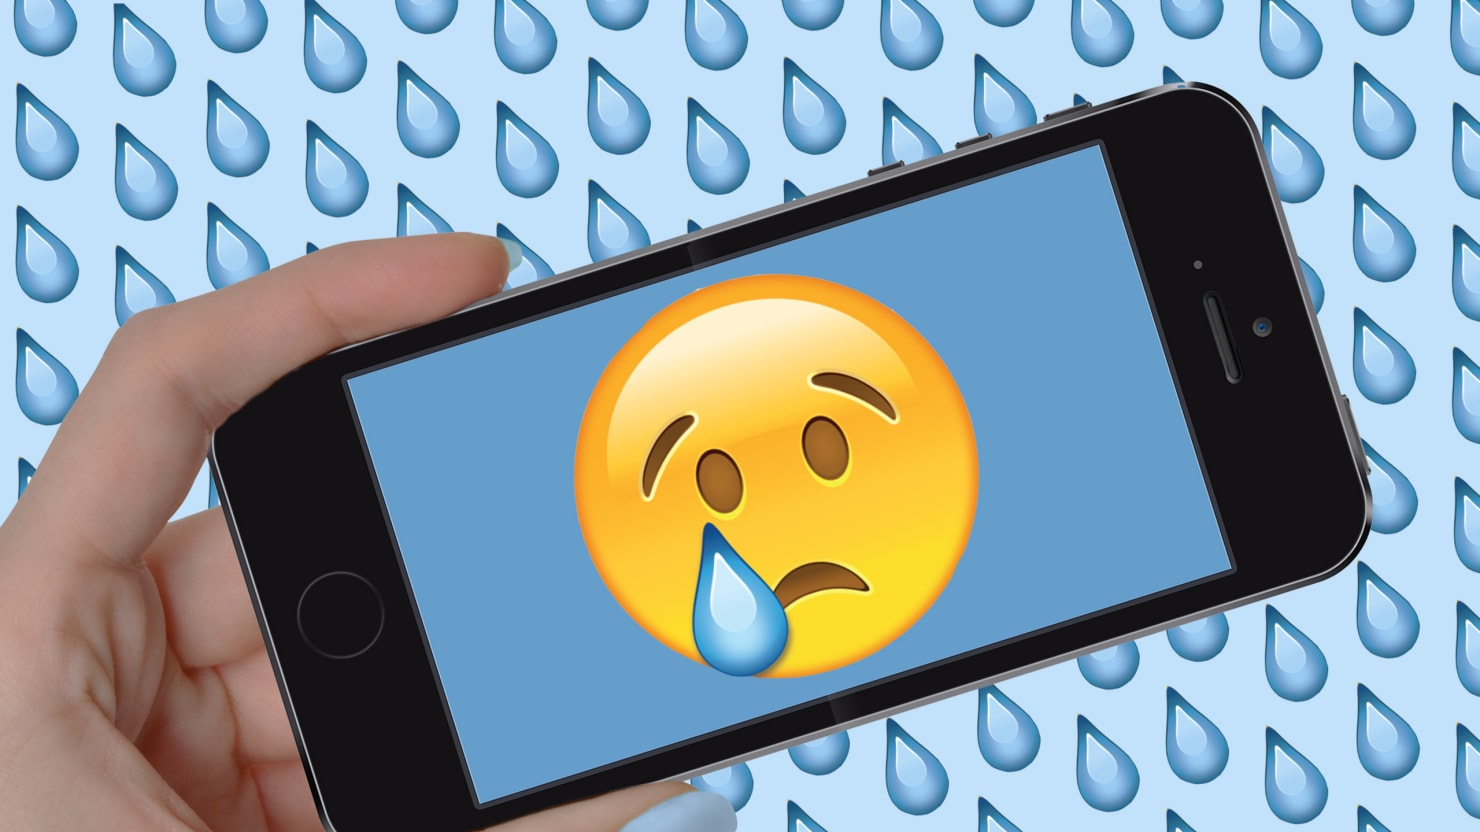 Your Phone Knows When You're Depressed